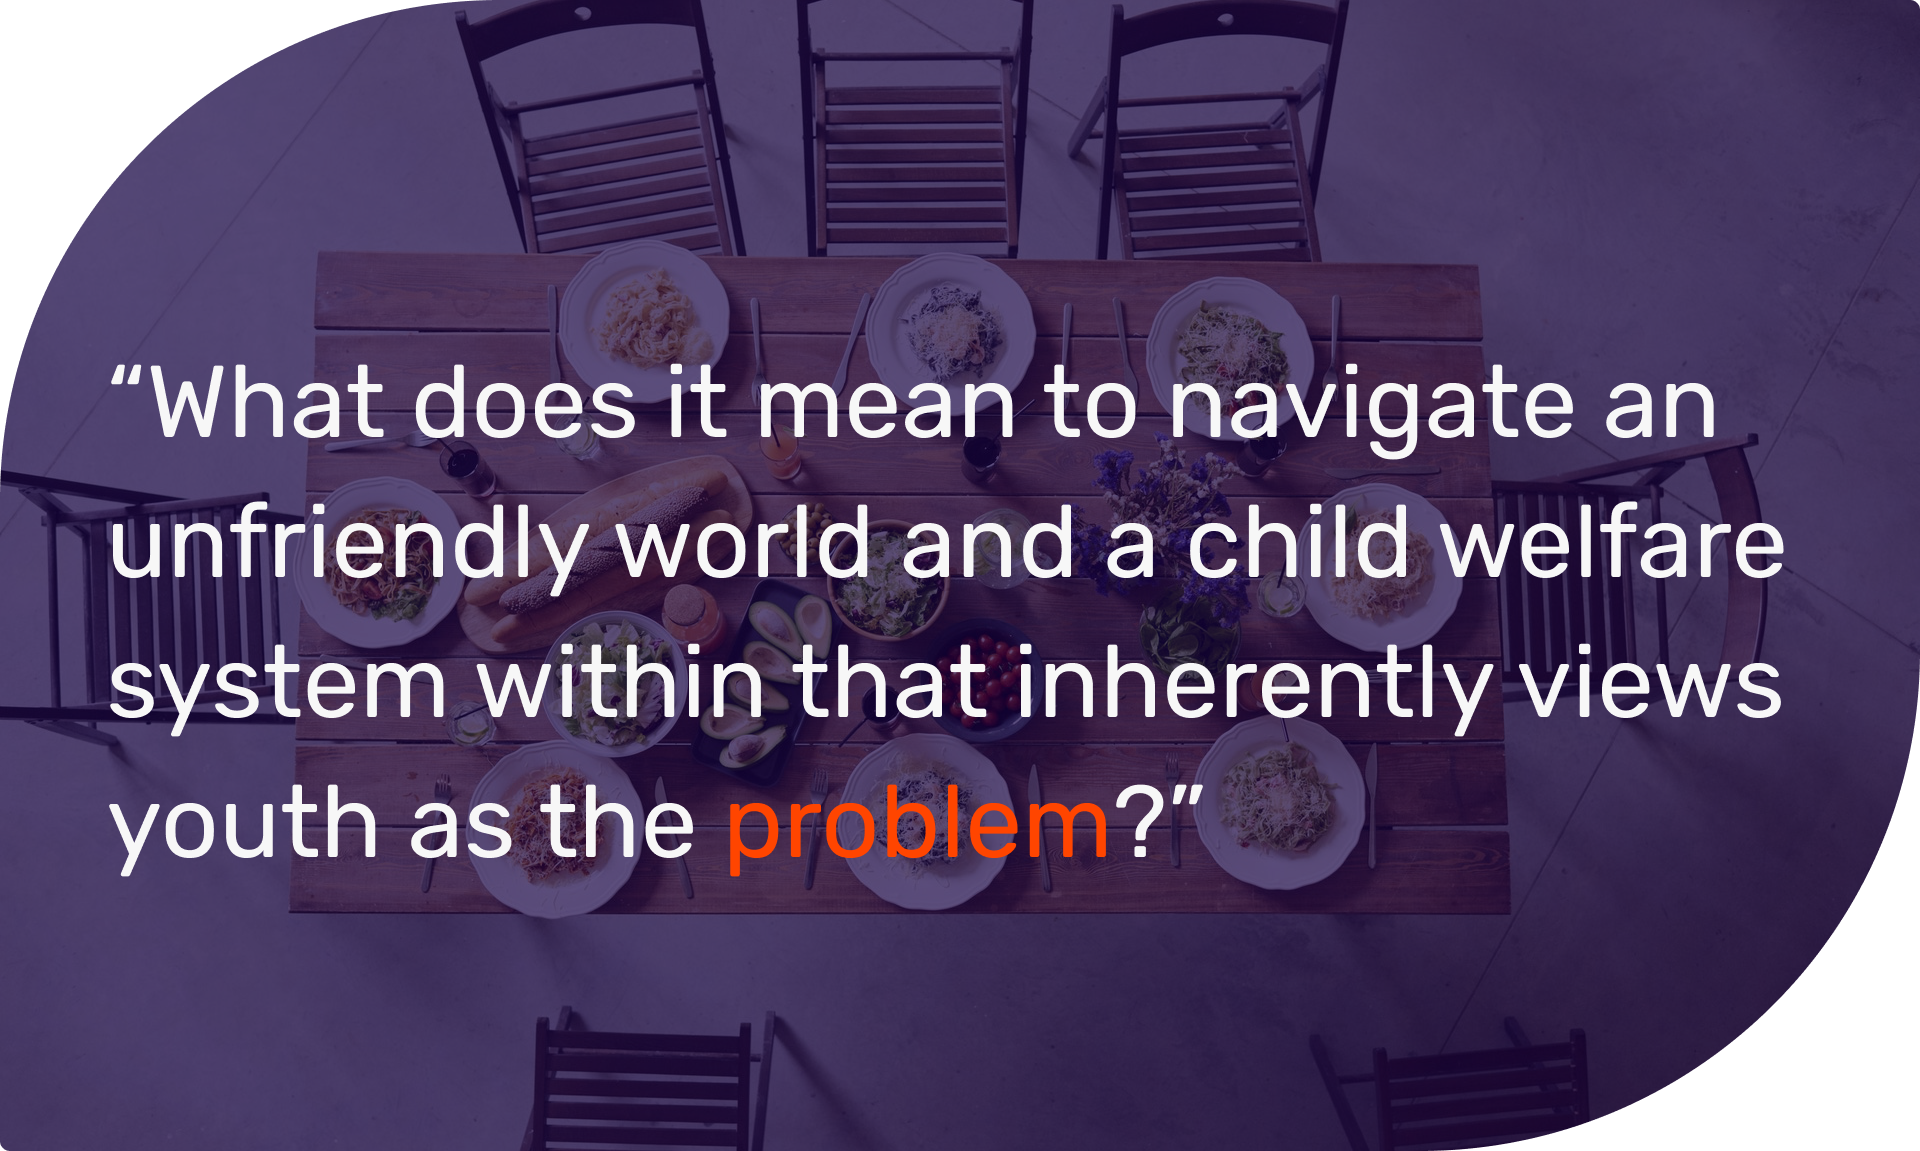 What does it mean to navigate an unfriendly world and a child welfare system within that inherently views youth as the problem